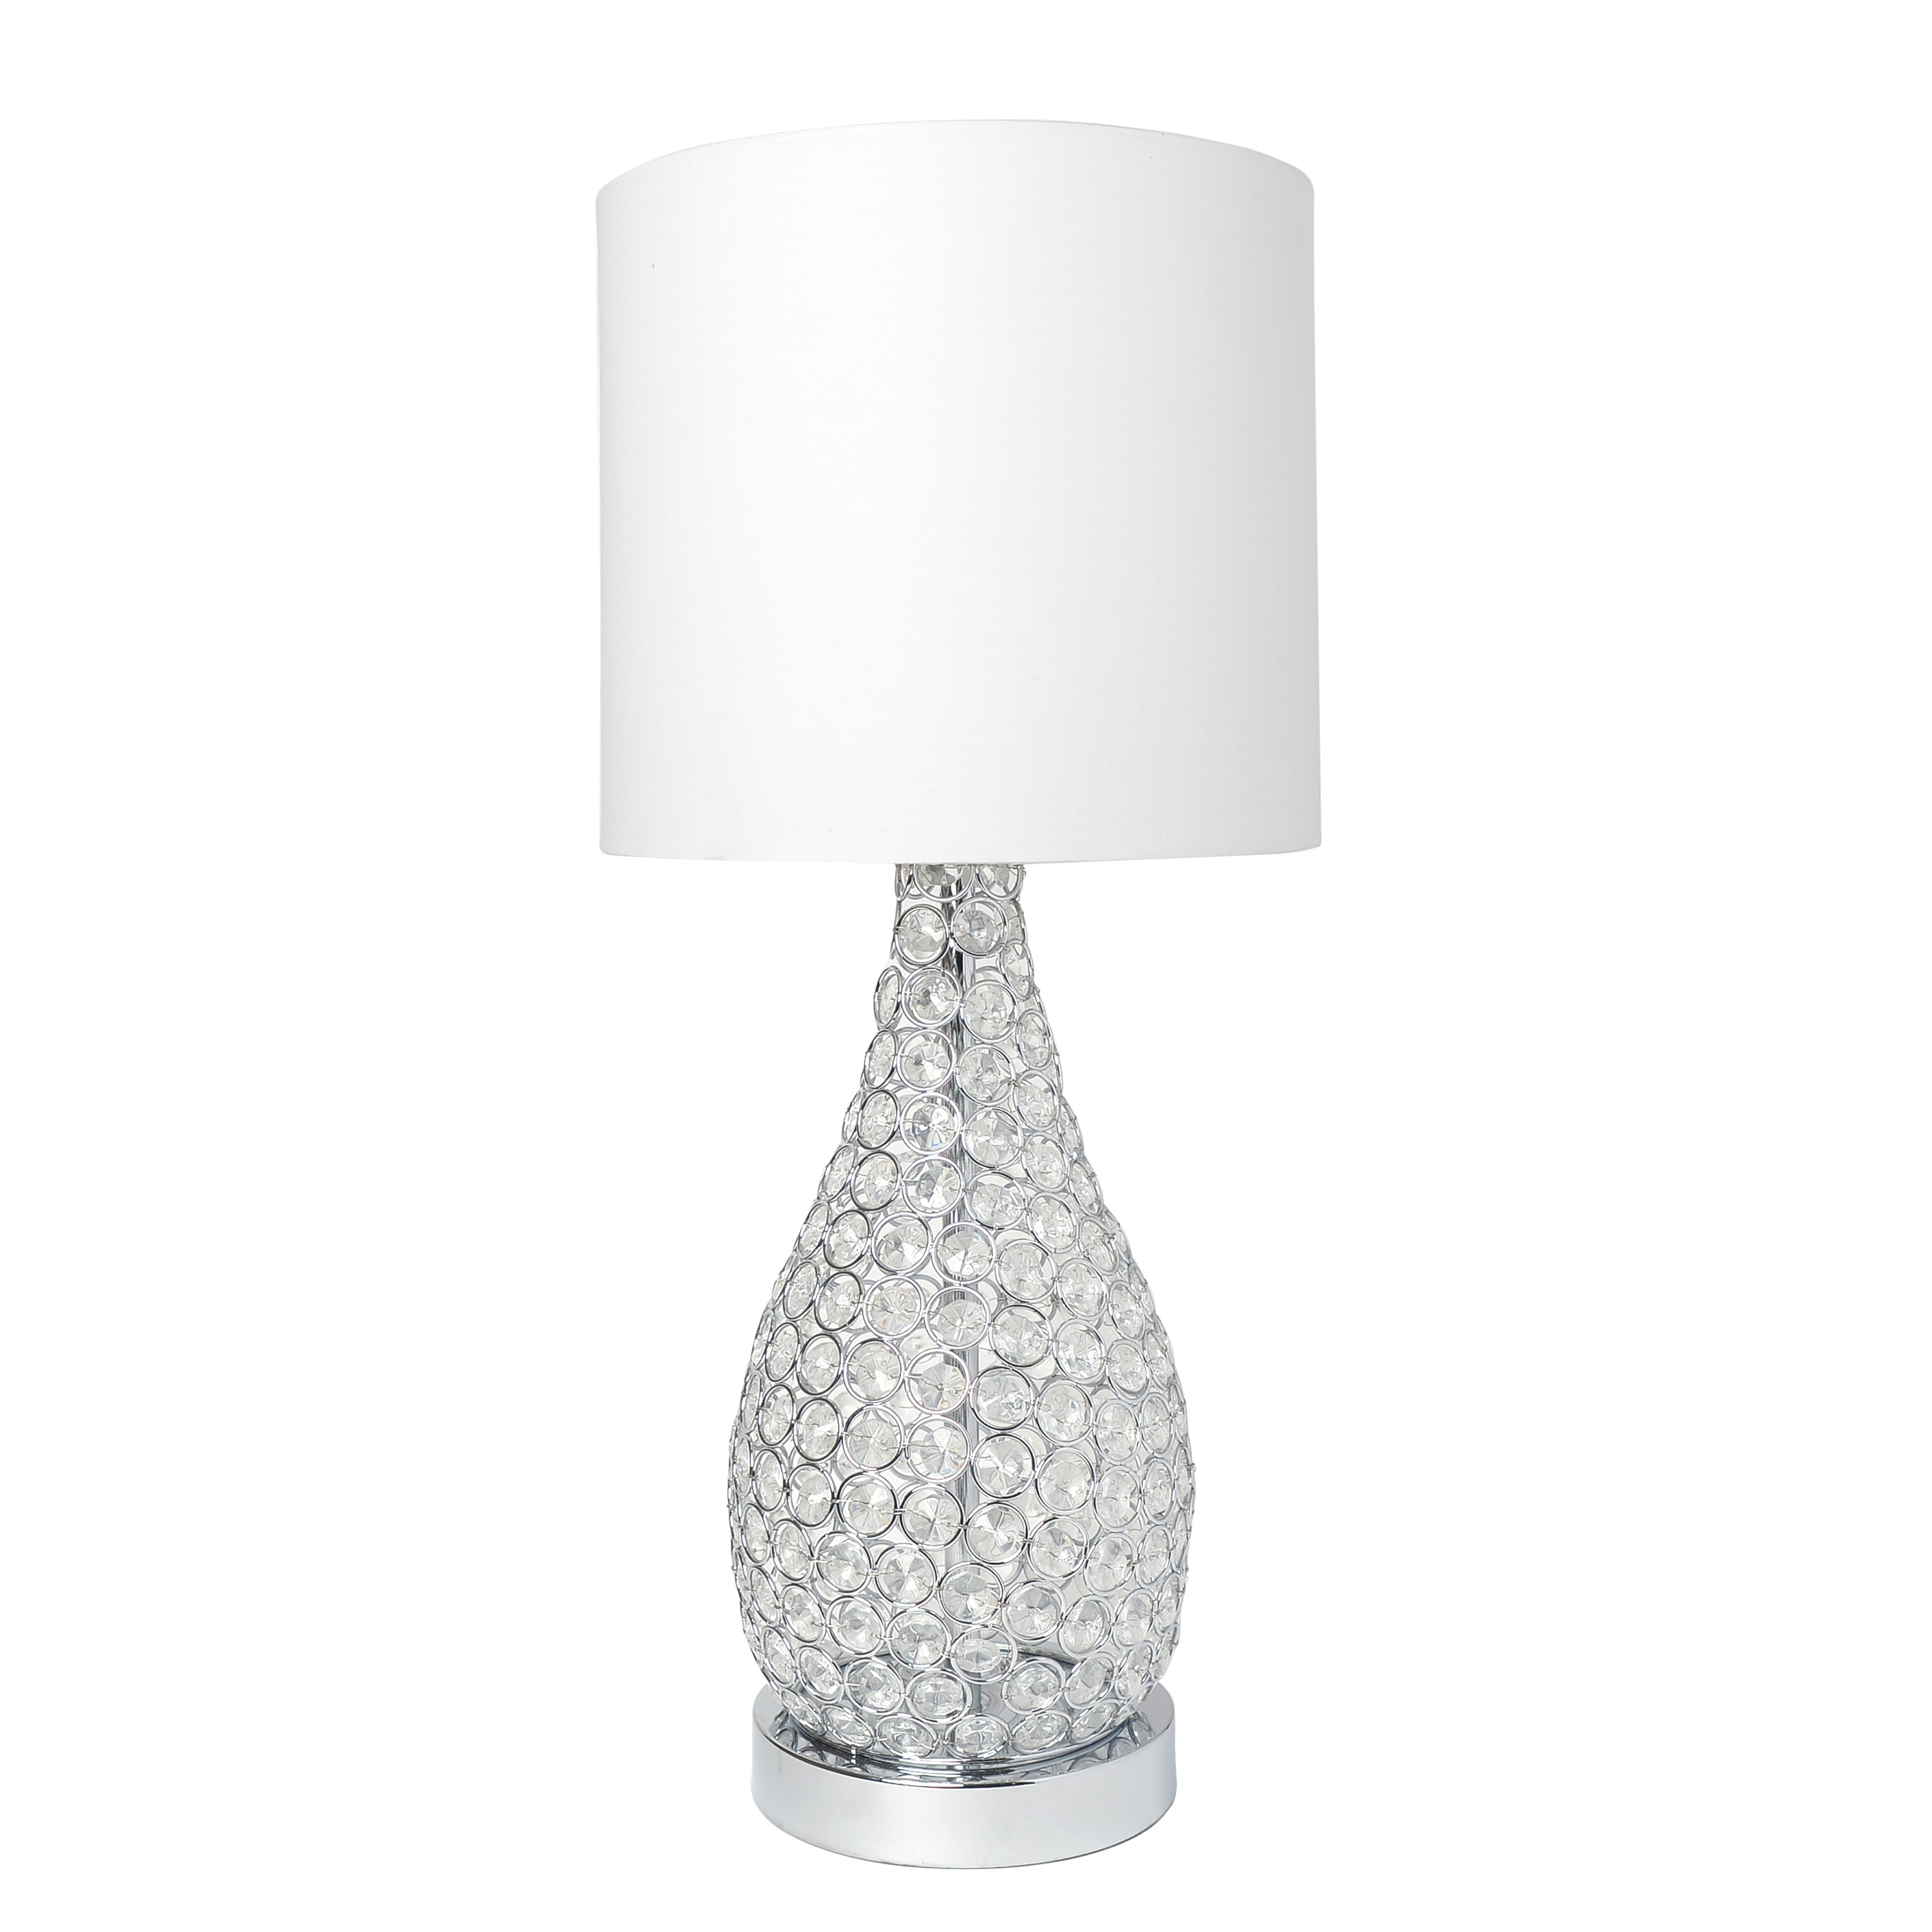 Elegant Designs Elipse Crystal Pinned Decorative Gourd Accent Table Lamp, Chrome